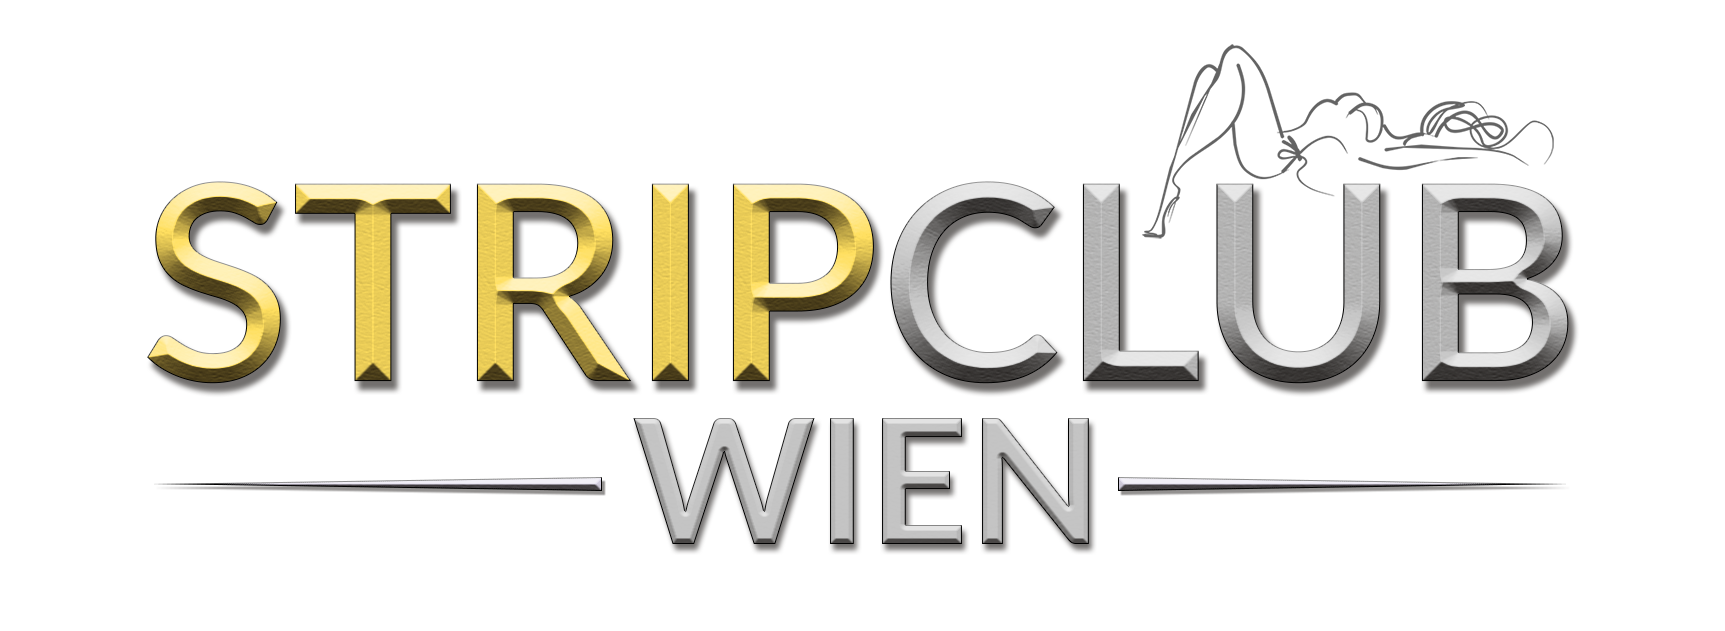 Stripclubs in Wien